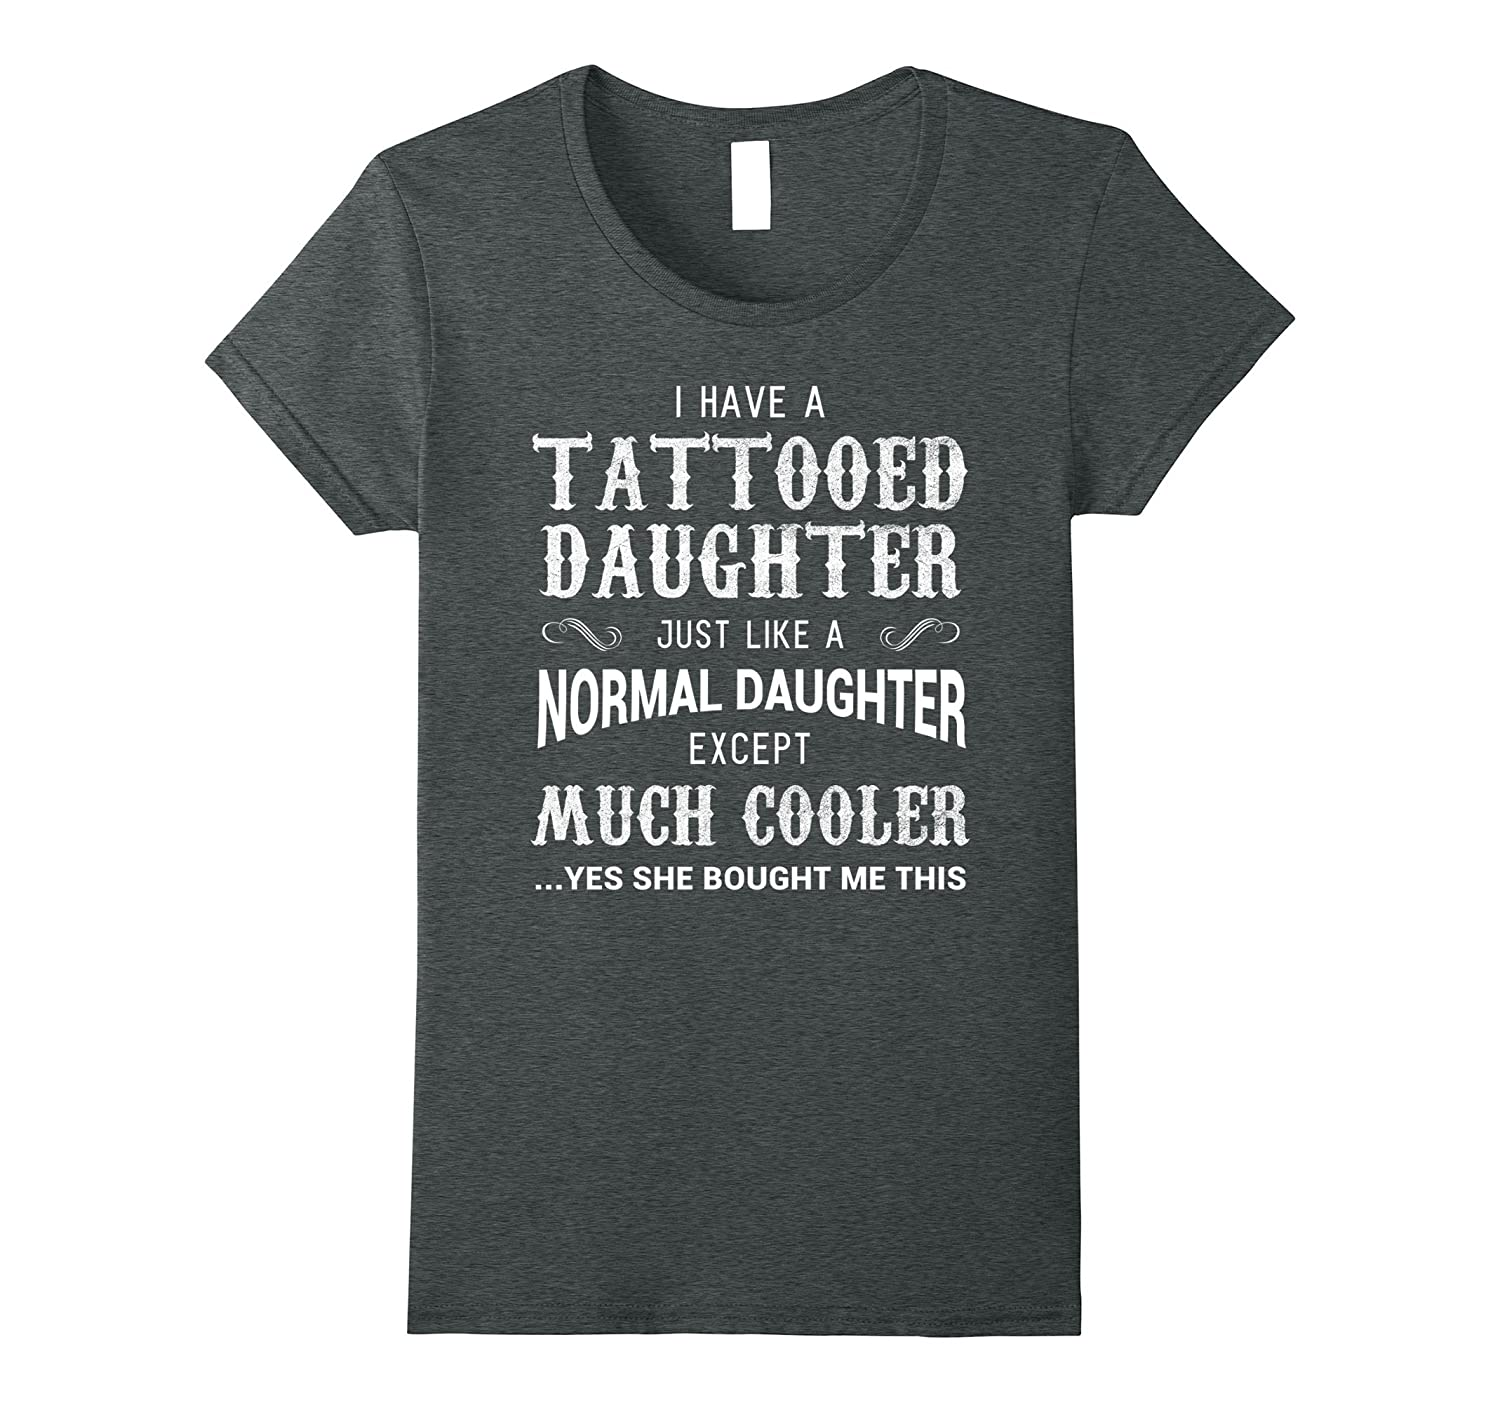 Funny Tattooed Daughter Shirt Tattoo Fathers Day Gift